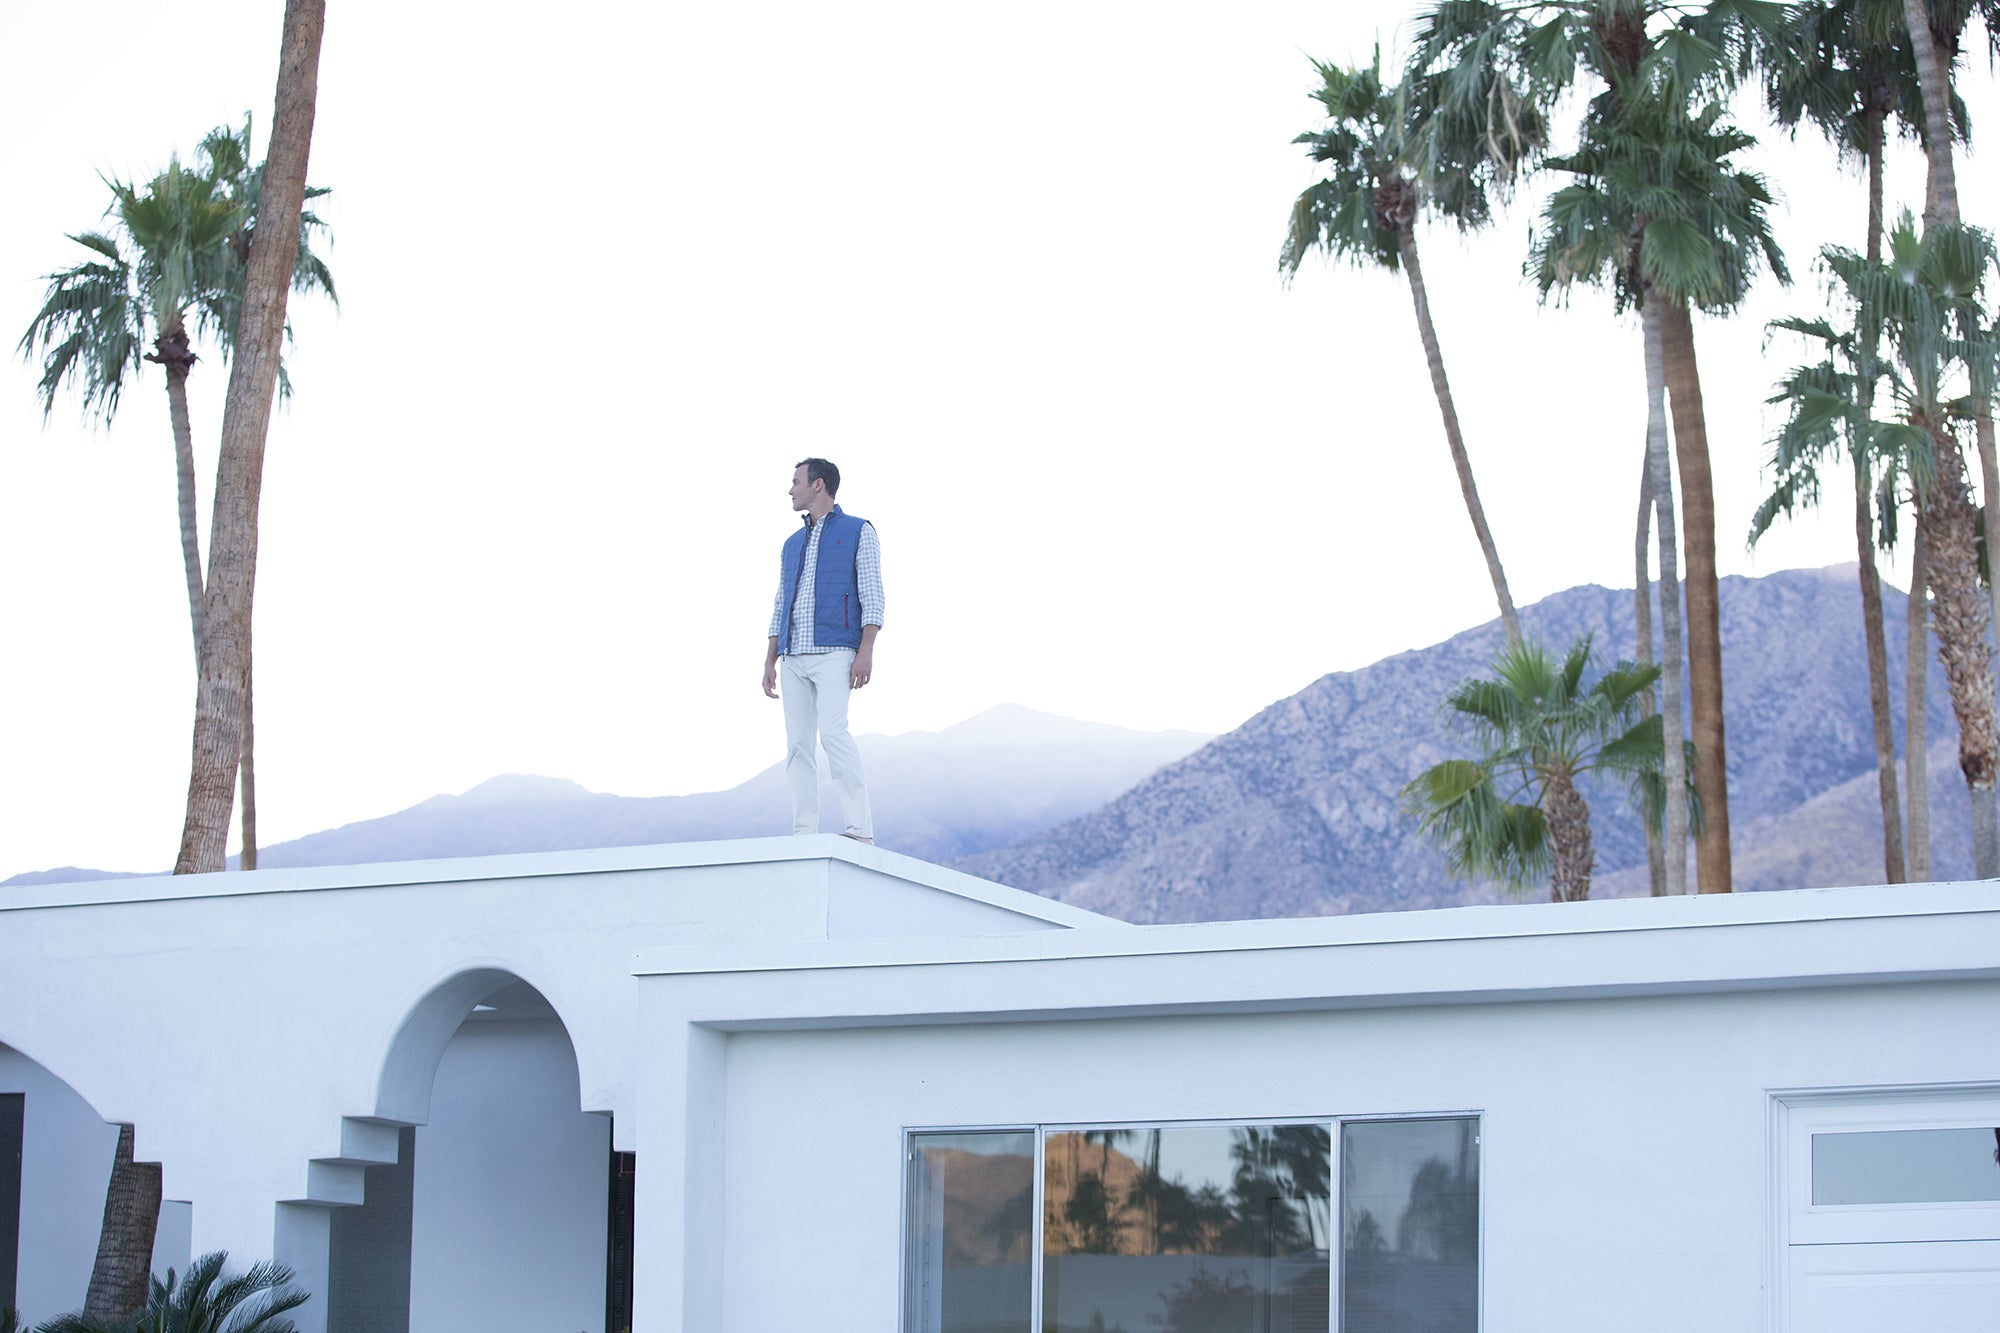 DESERT WEEKENDS IN PALM SPRINGS